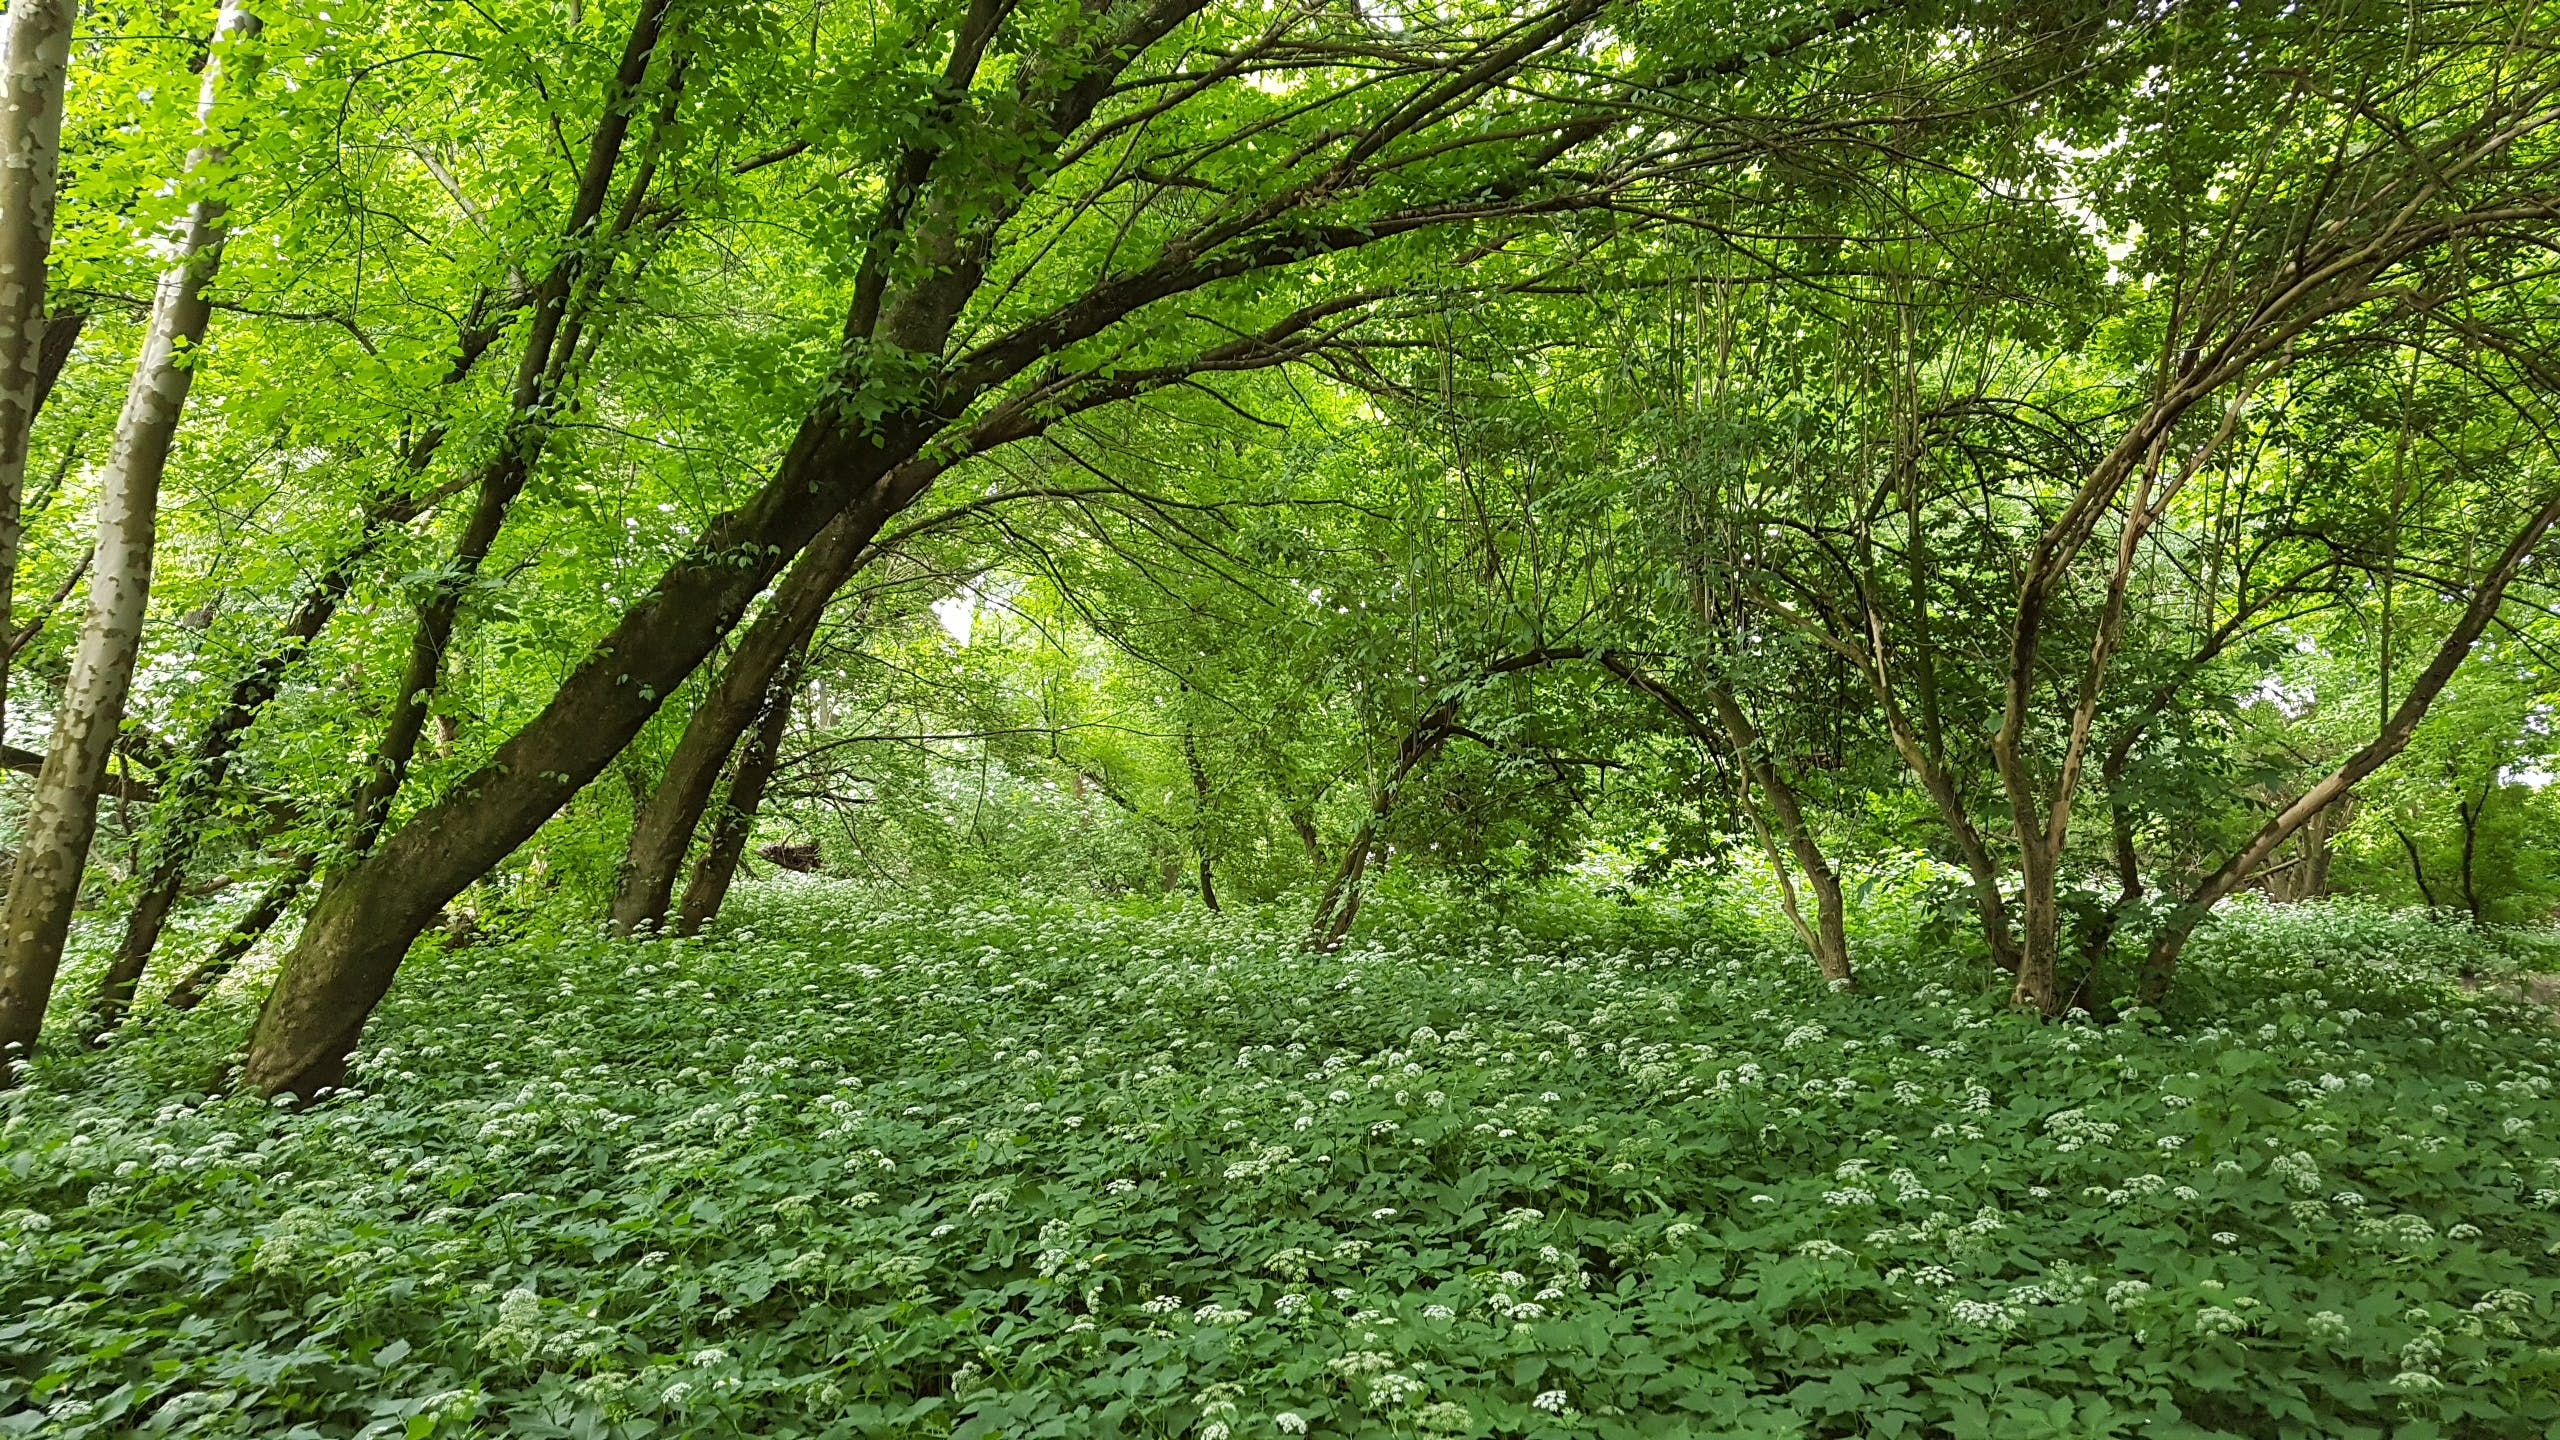 #woods, green, mother nature